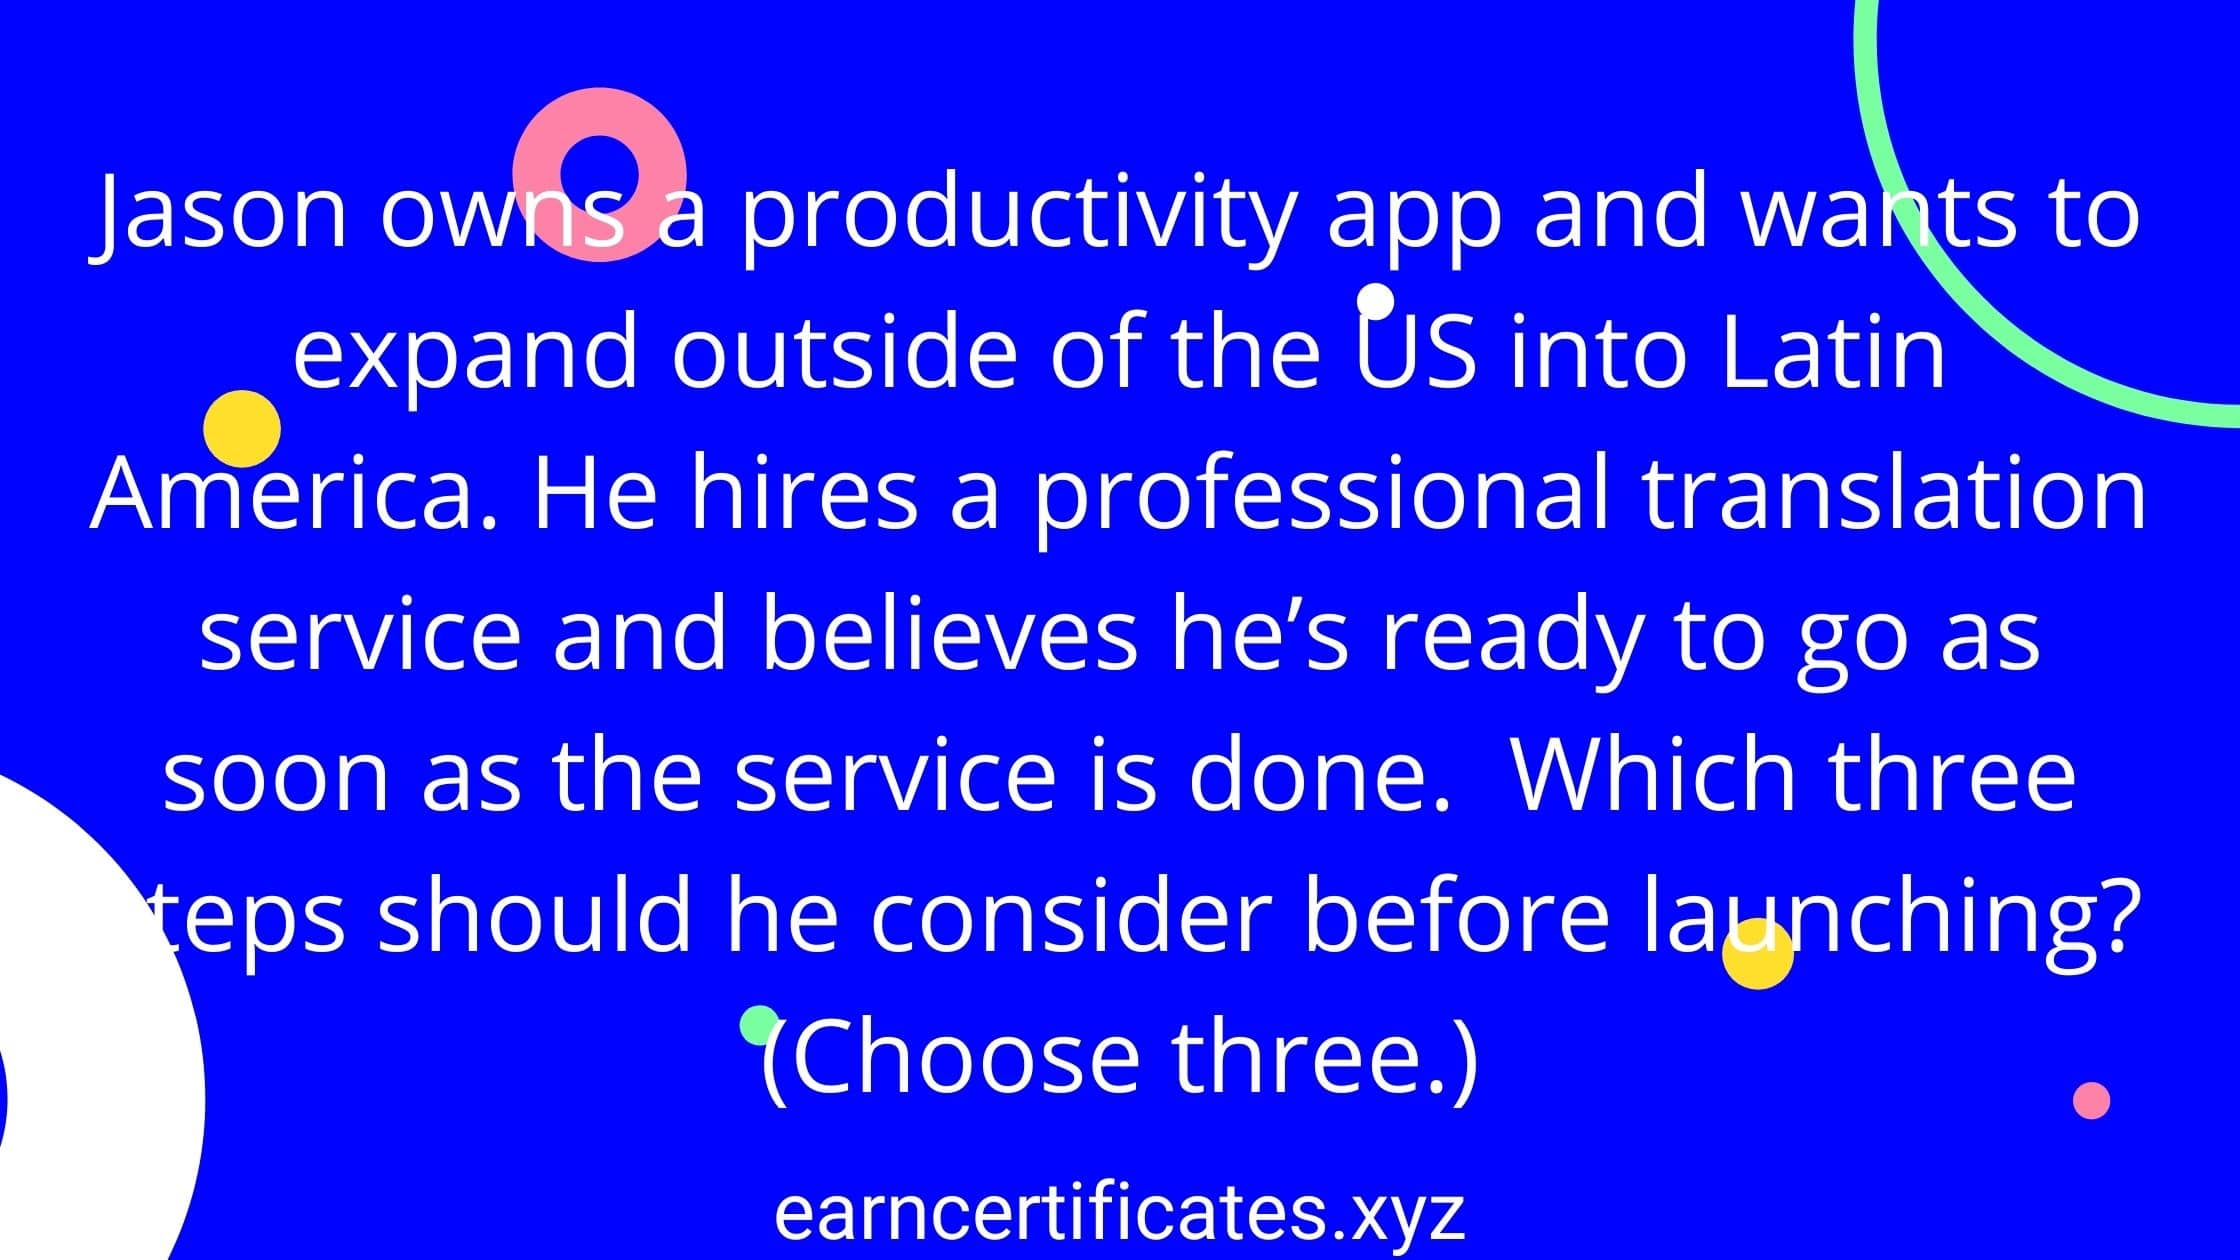 Jason owns a productivity app and wants to expand outside of the US into Latin America. He hires a professional translation service and believes he's ready to go as soon as the service is done. Which three steps should he consider before launching? (Choose three.)